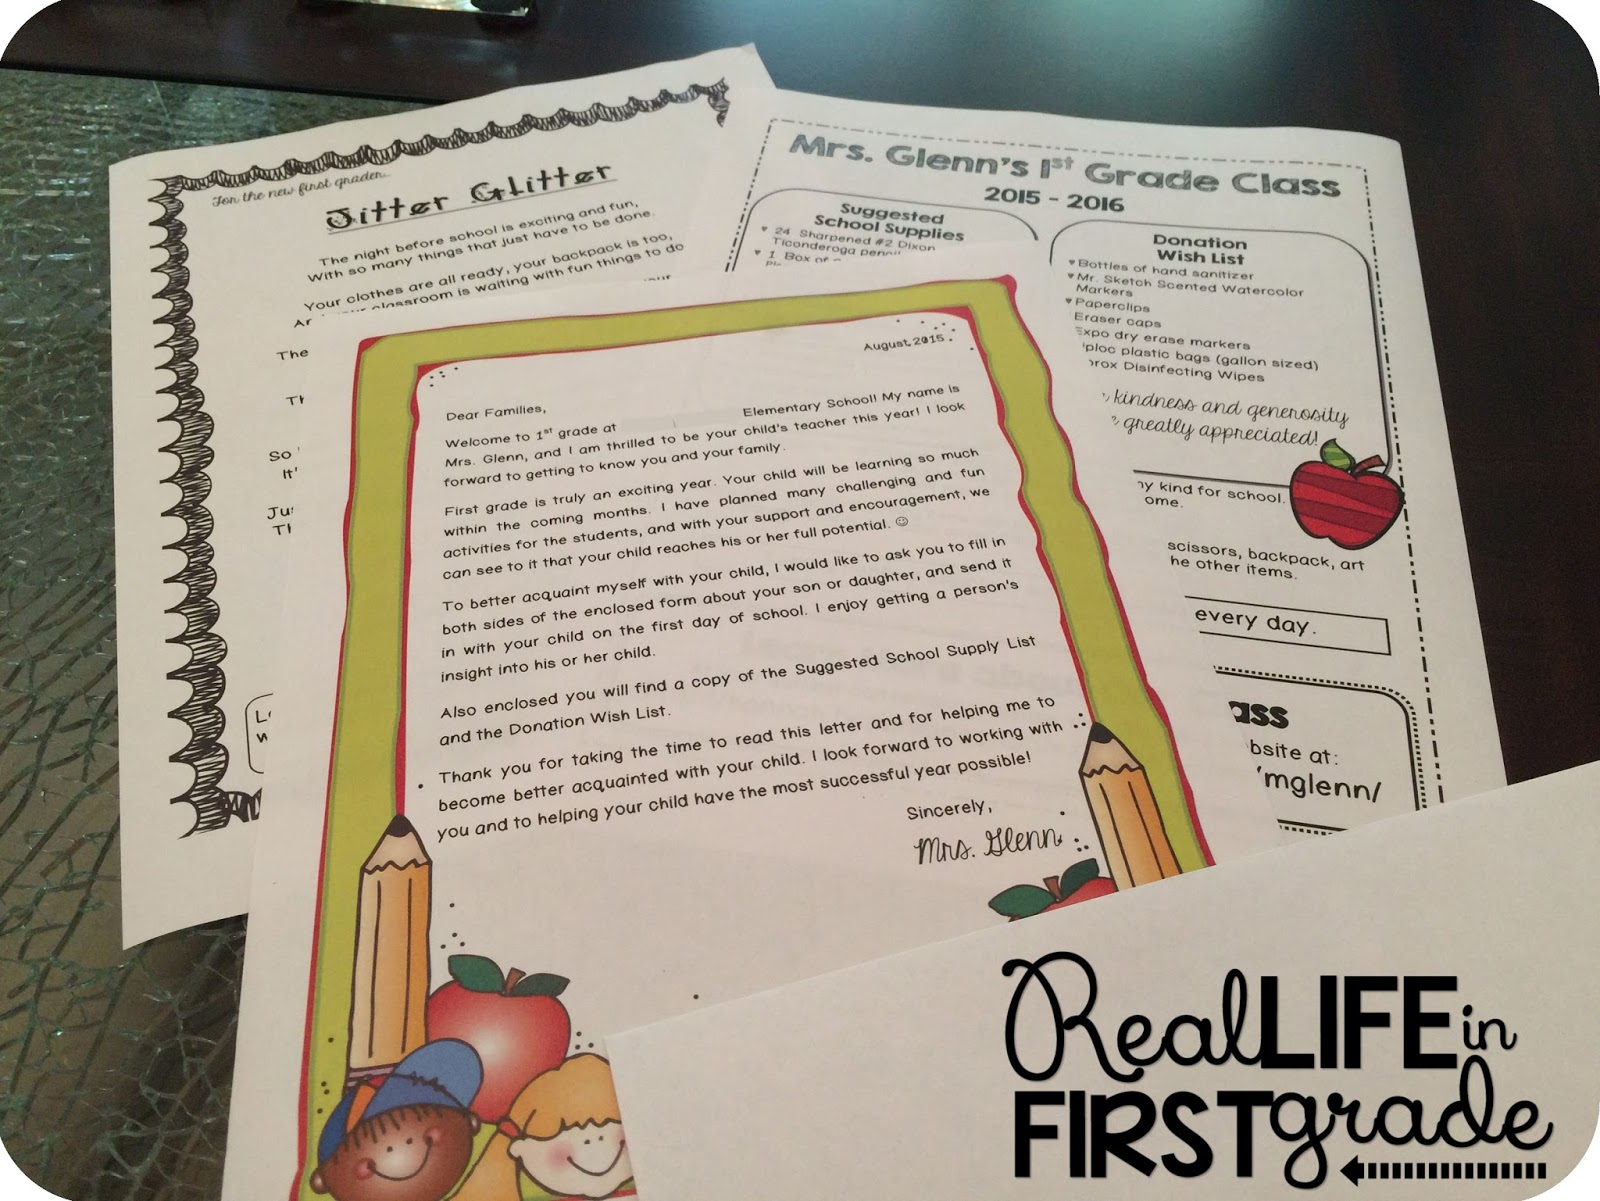 Real life in first grade july 2015 summer letter supply list and jitter glitter for back to school altavistaventures Gallery